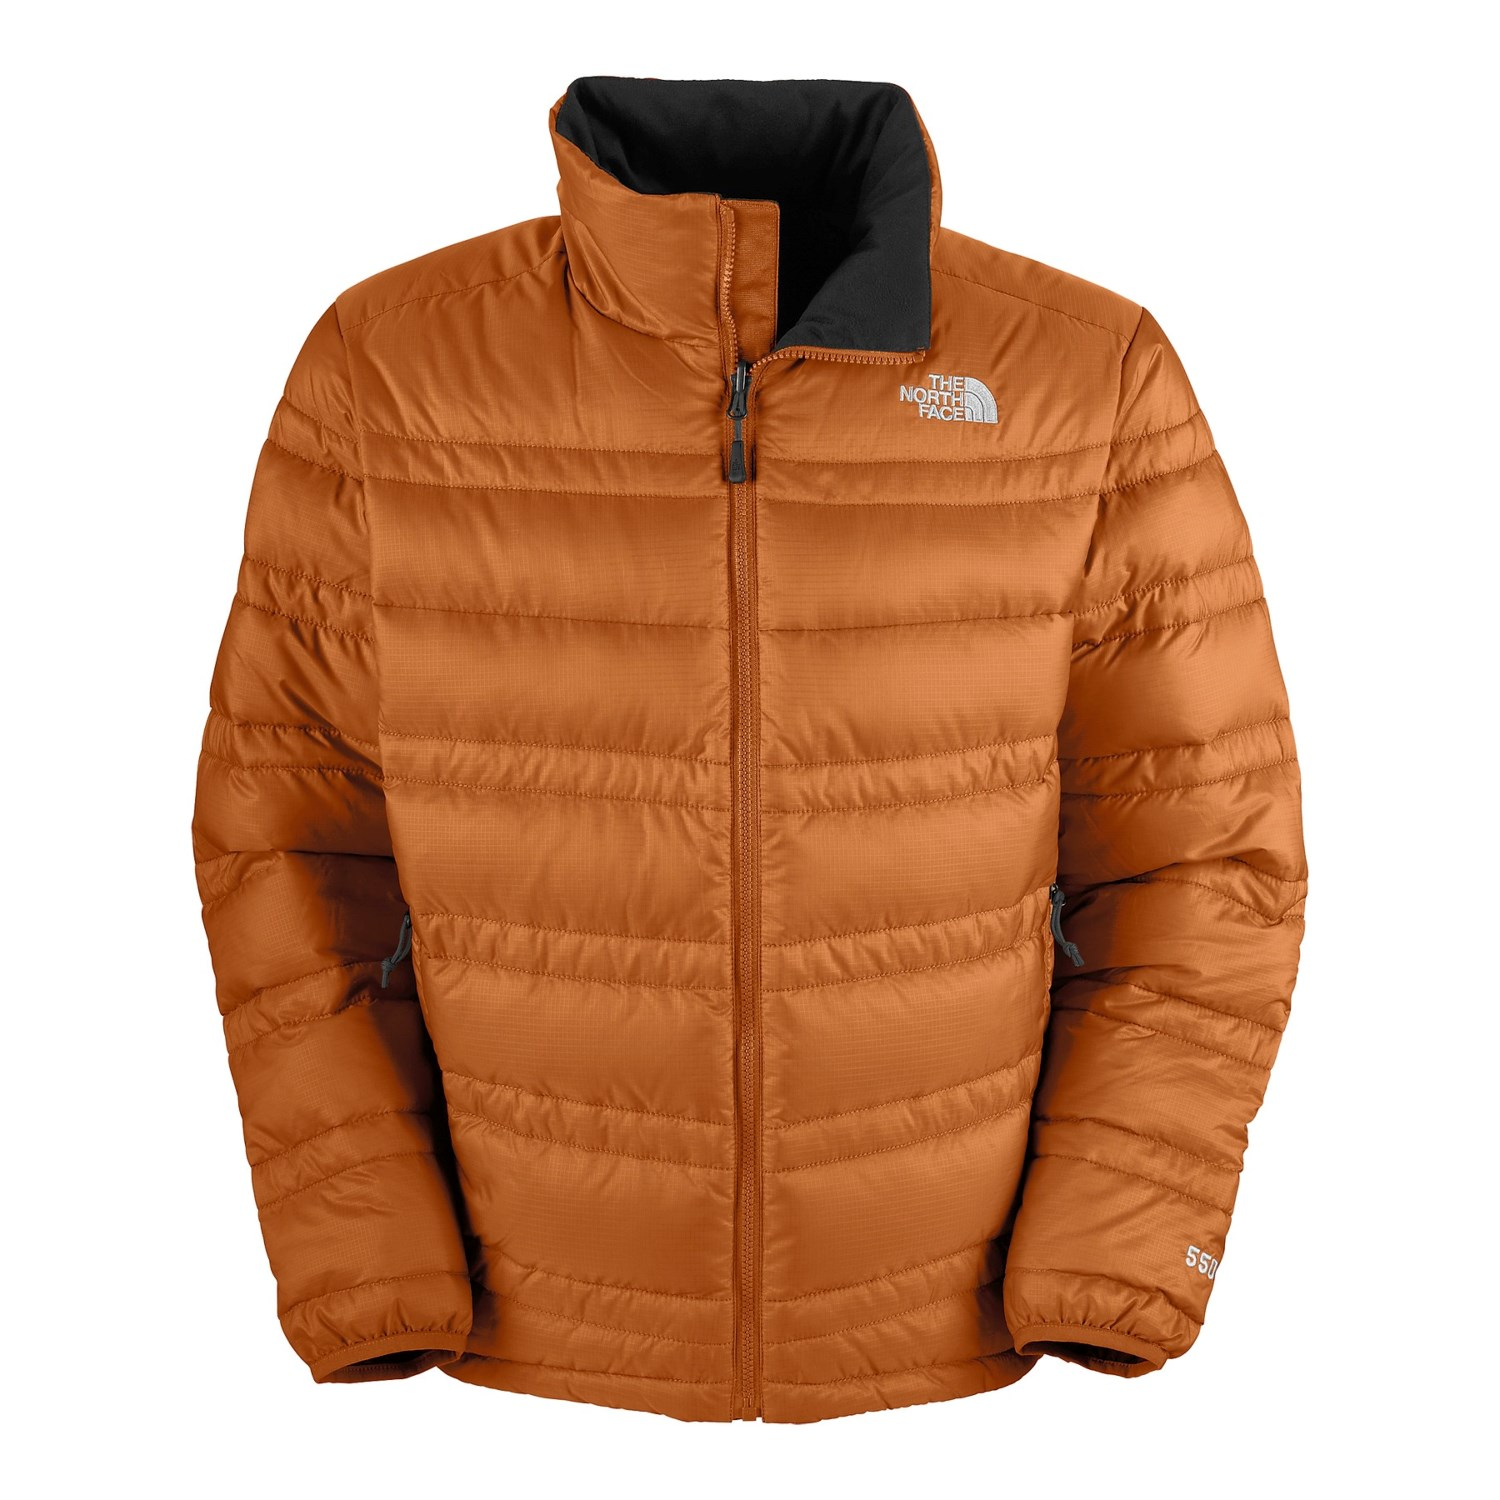 North Face Jackets For Men On Clearance